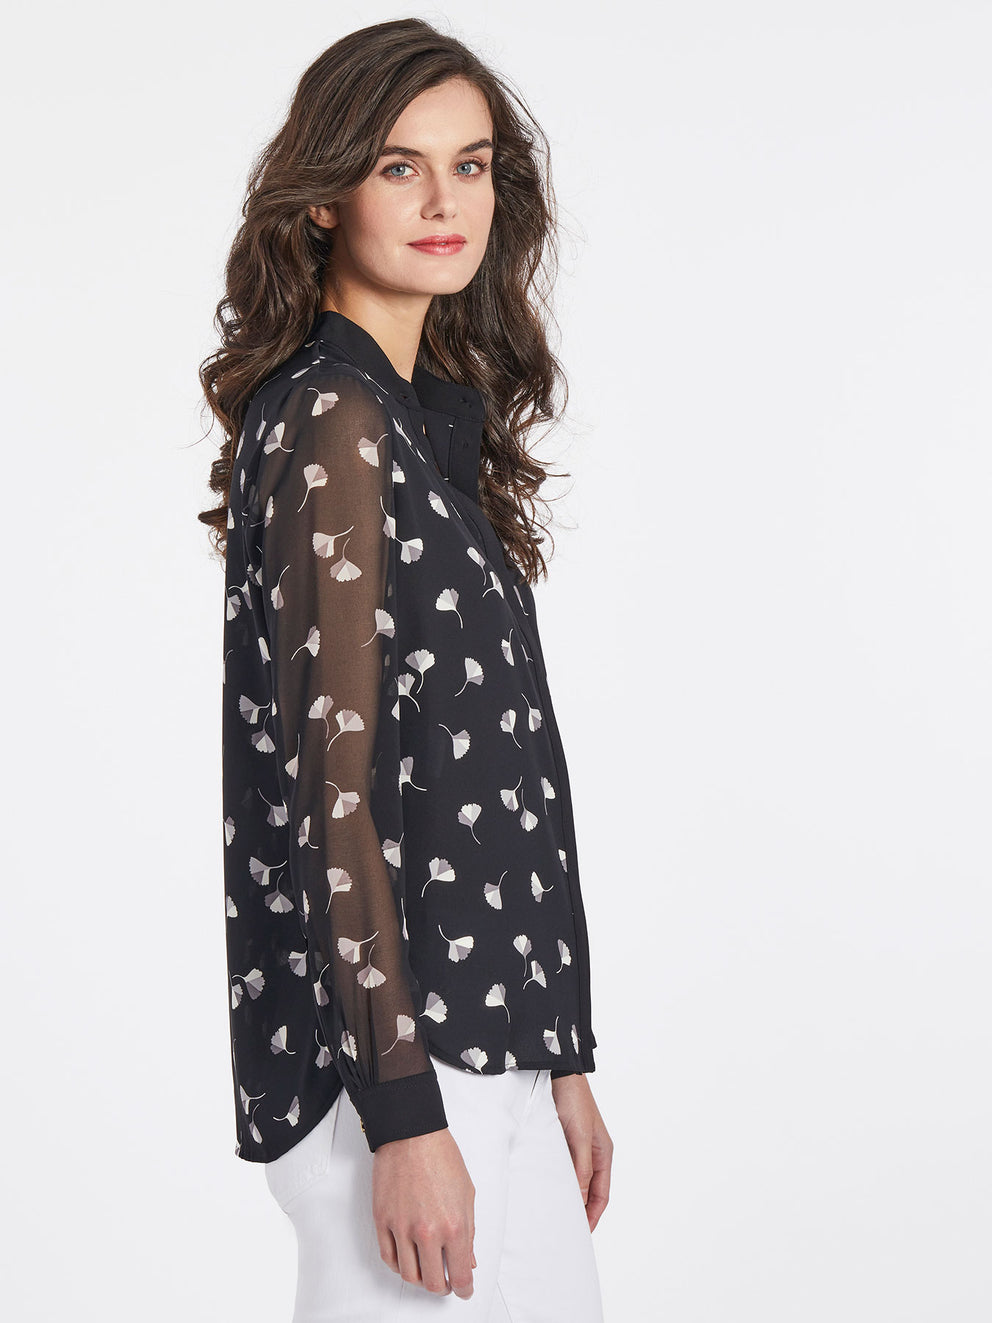 The Jones New York Printed Collarless Blouse in color Jones Black Combo - Image Position 2